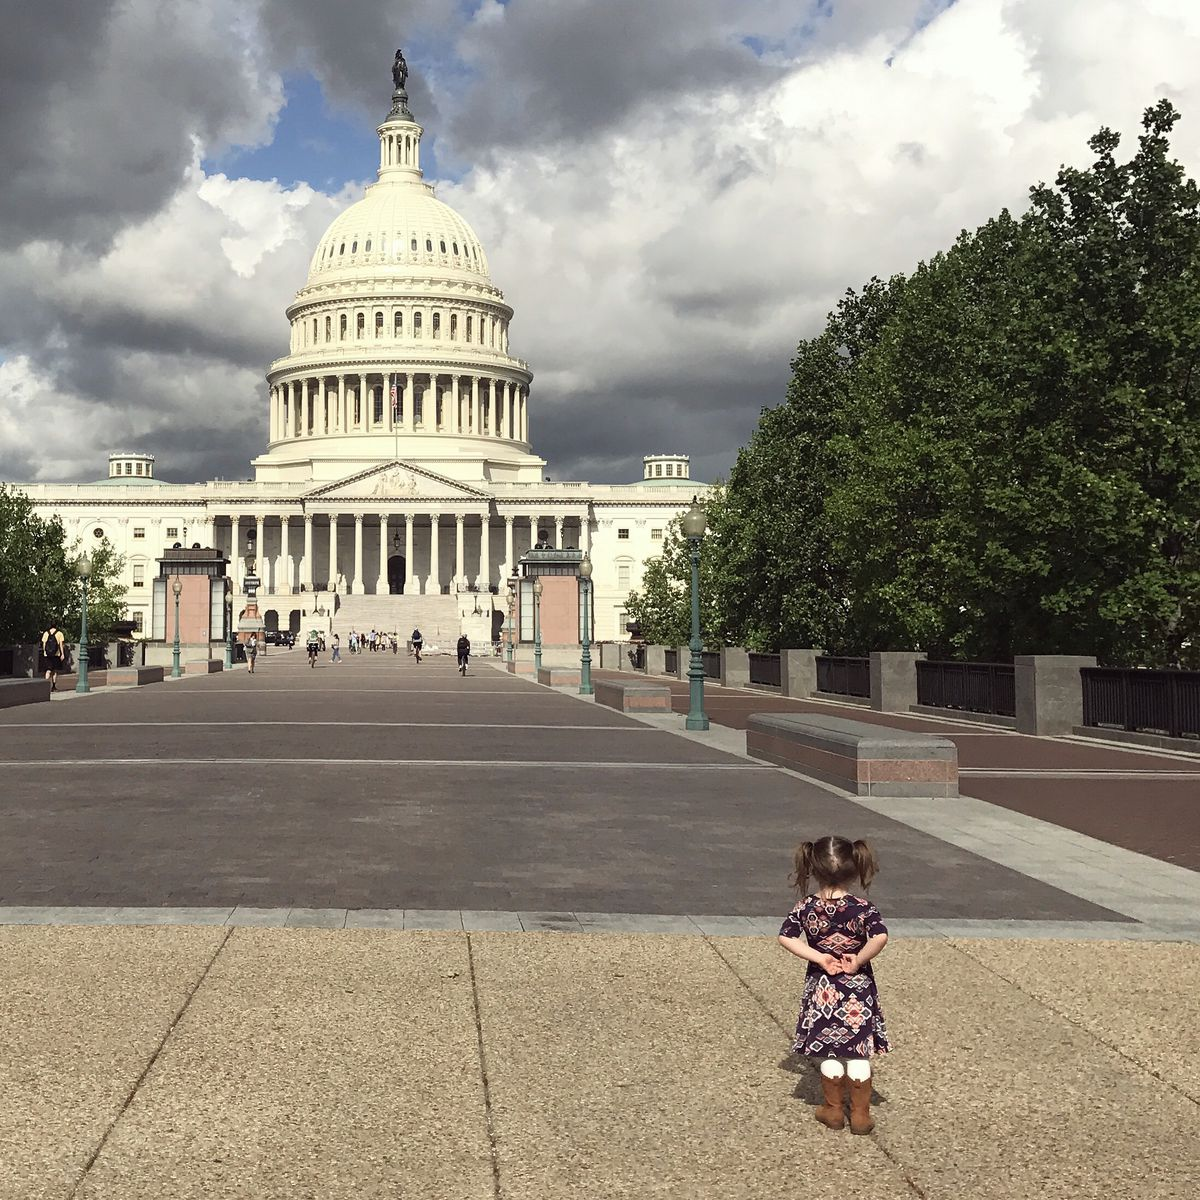 Lake Harvey, 2, stands before the U.S. Capitol in Washintgon, D.C., where she and her family participated in Strolling Thunder in May. (Photo courtesy Mackenzie Harvey)